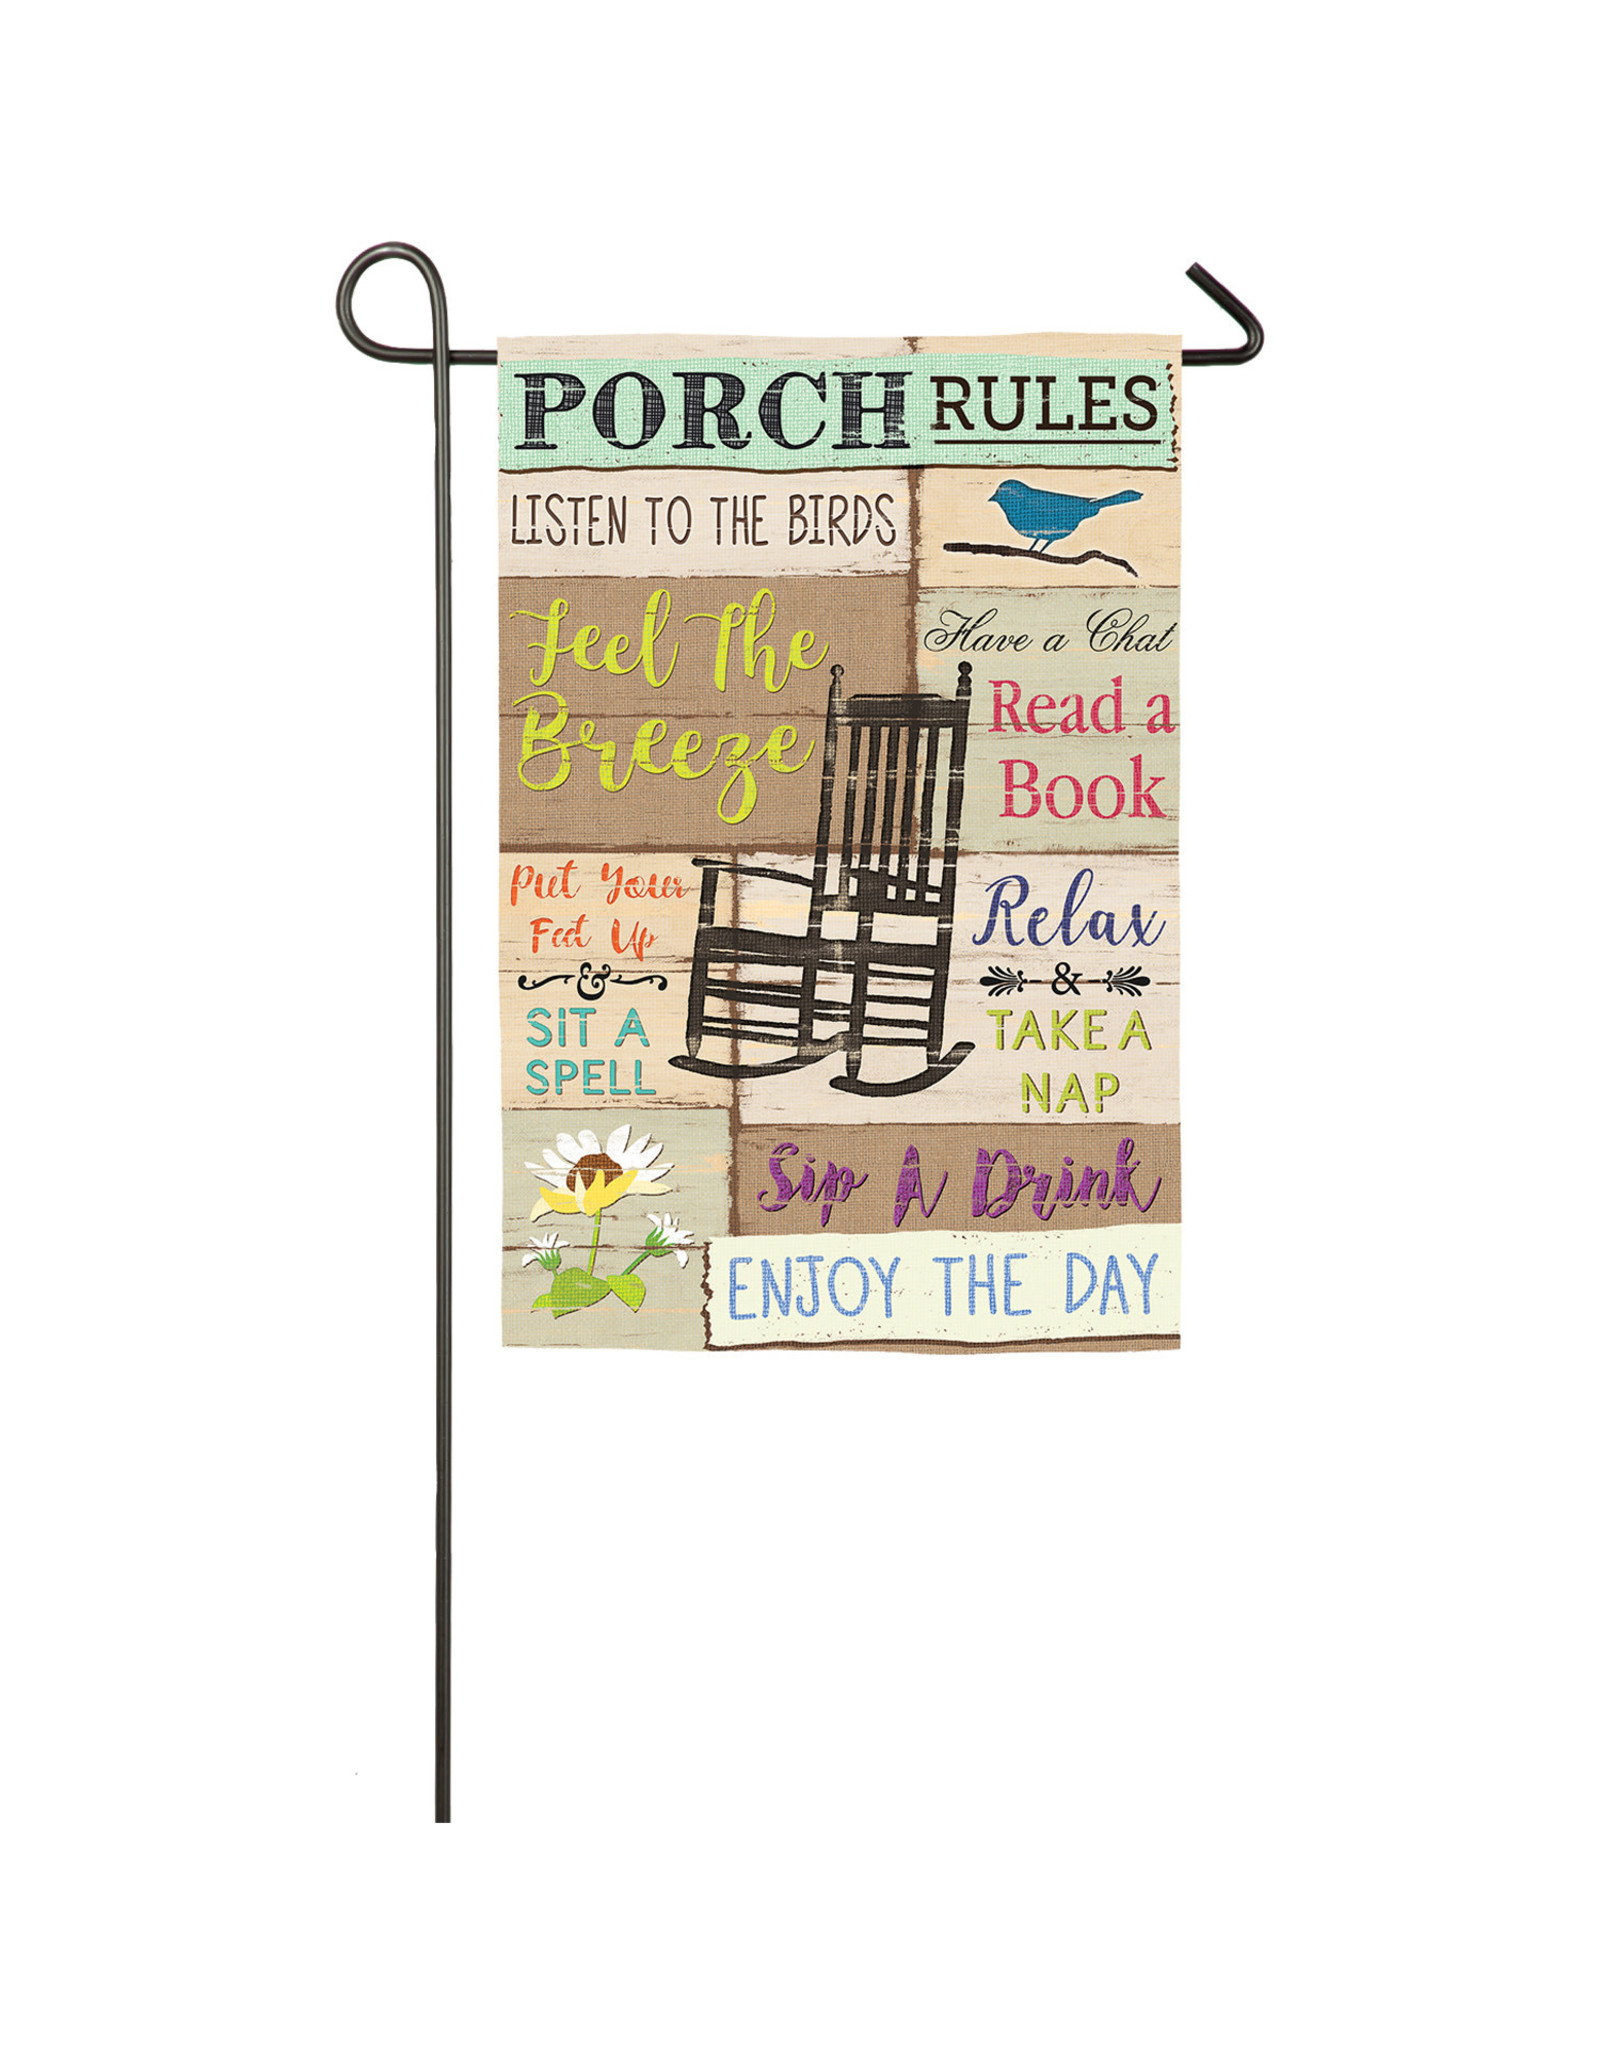 Evergreen PORCH RULES GARDEN FLAG